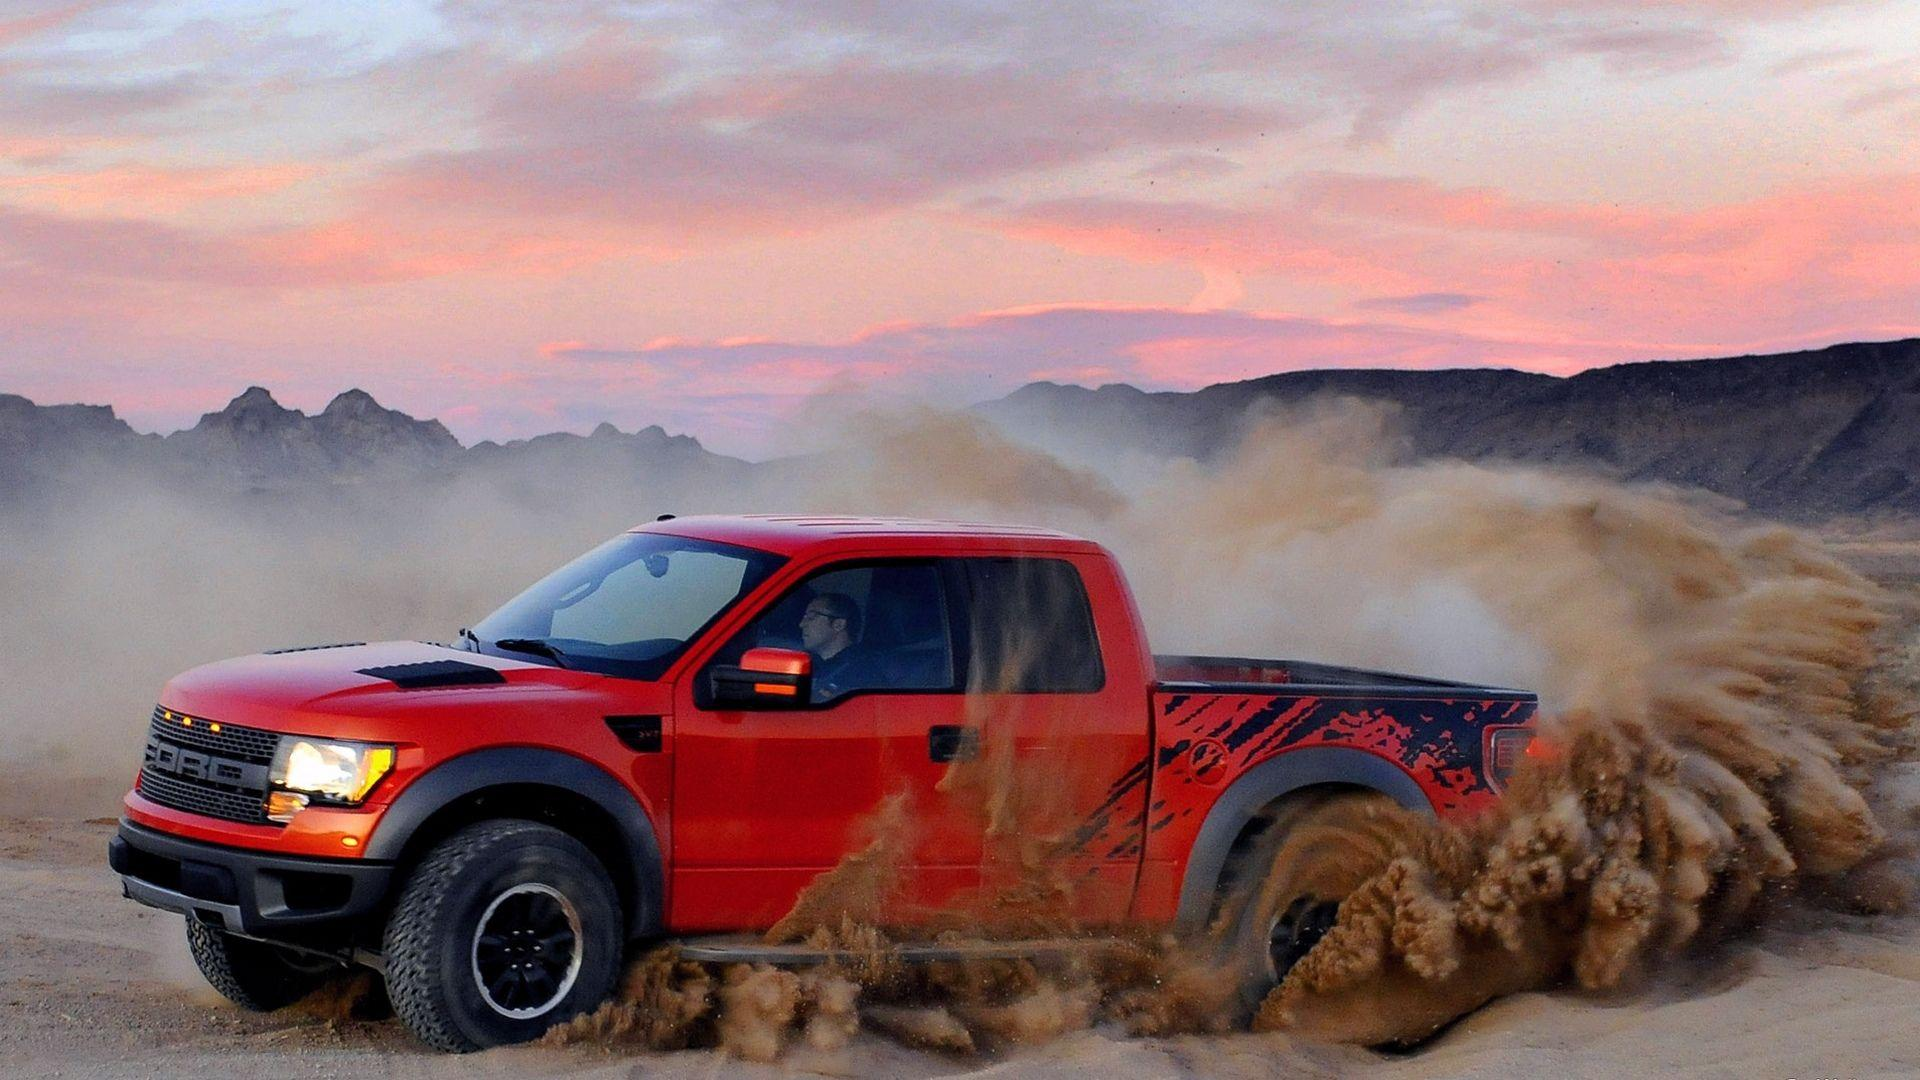 Ford Truck Wallpapers - Wallpaper Cave